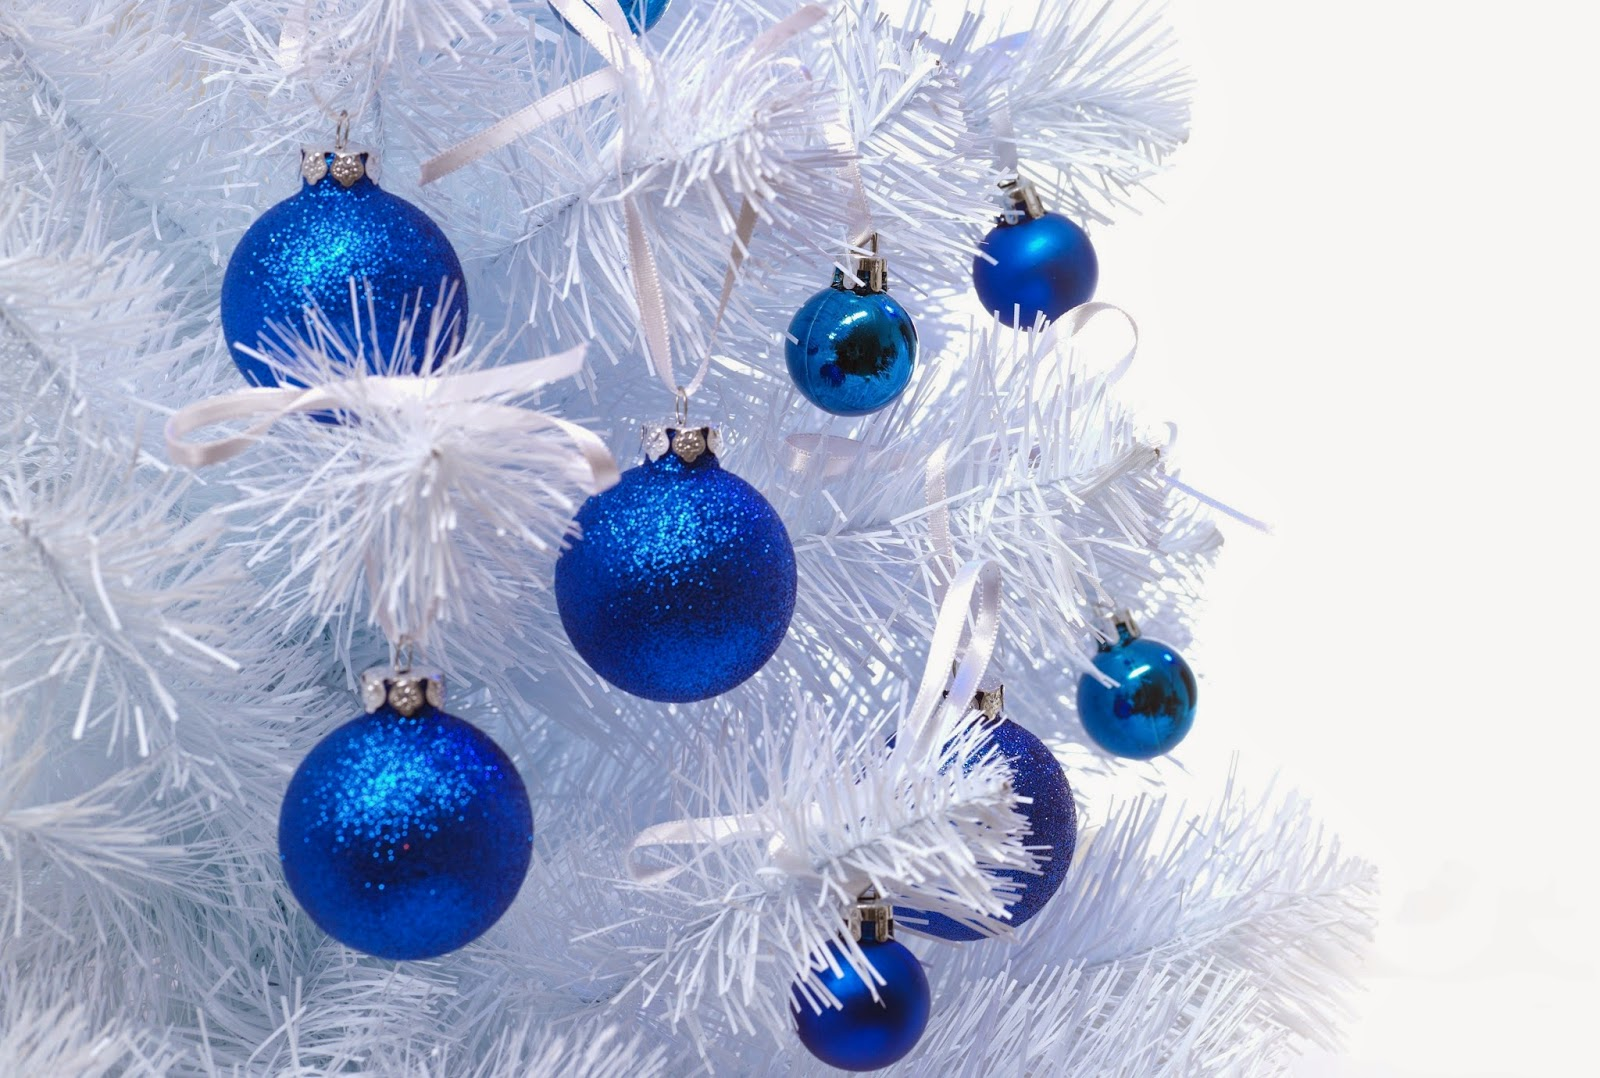 Blue-Christmas-baubles-decoration-ideas-for-white-christmas-tree-background-image.jpg